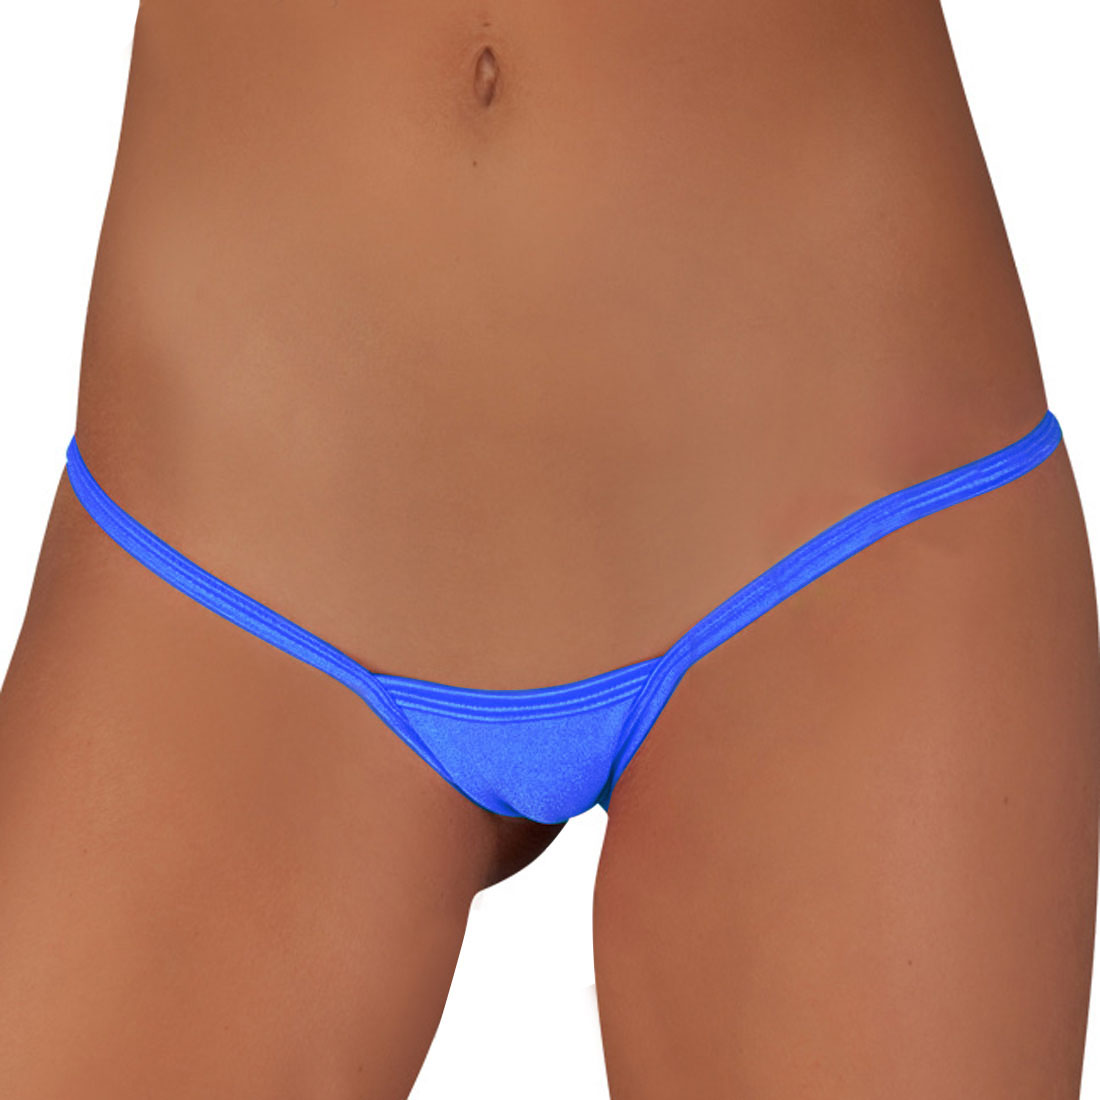 Find the best panties and women's underwear and get free shipping! From minimal coverage panties like g-strings and thongs to moderate-coverage and full-coverage options bikinis and boyshorts, our selection of women's panties will meet your every need.